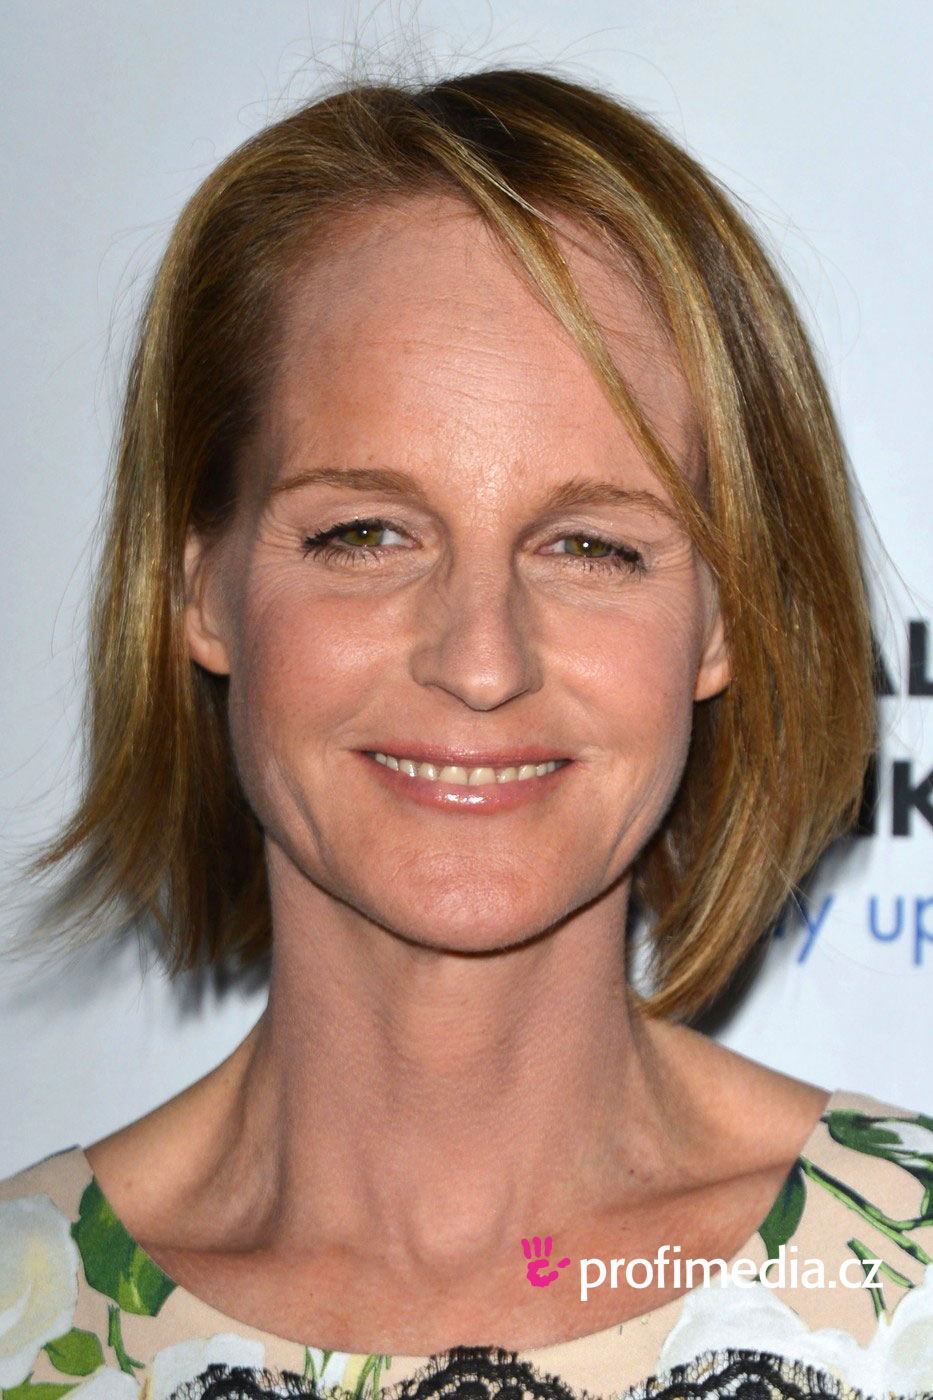 Celebrity Helen Hunt nudes (51 photos), Ass, Leaked, Instagram, legs 2006